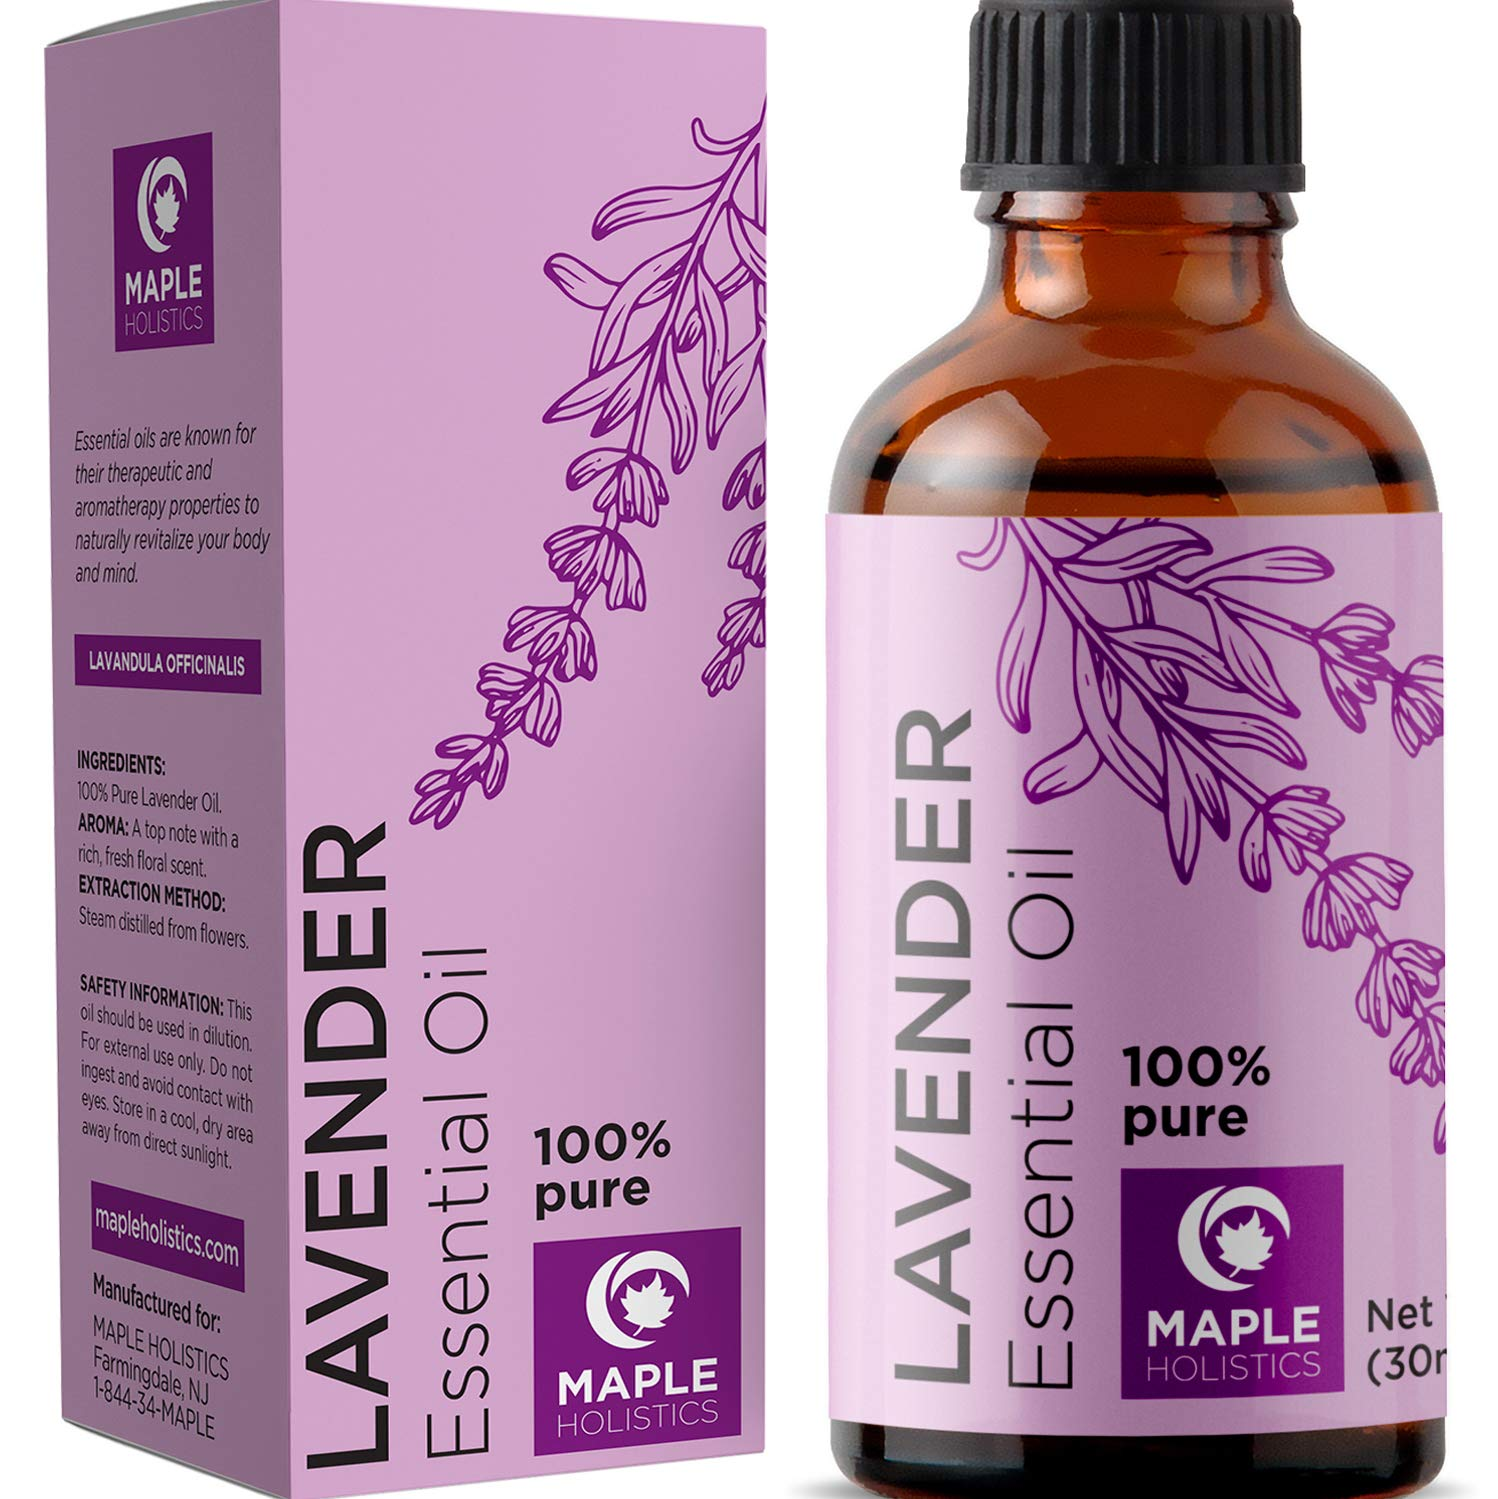 Pure Lavender Essential Oil for Skin and Hair - Therapeutic Grade Essential Oil for Sleep - Natural Stress Relief for Women and Men - Lavender Aromatherapy Oil for Anxiety - Hypoallergenic Detergent